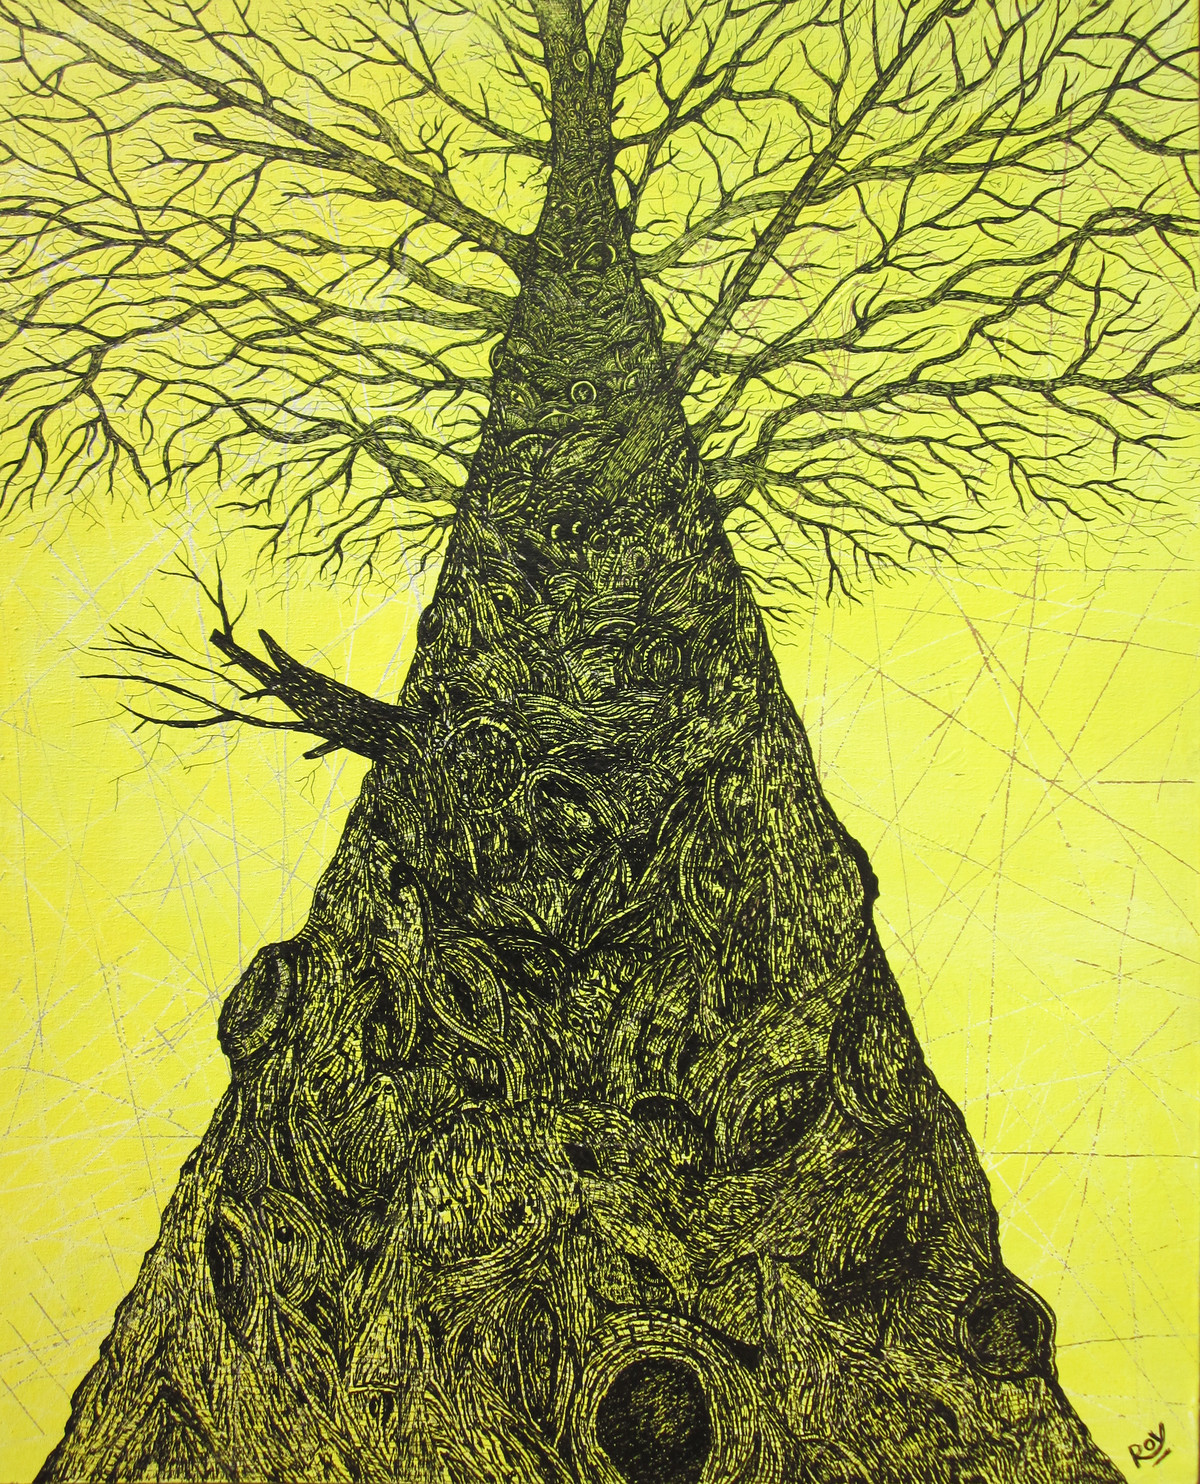 Tree of Life (1) Digital Print by Priyabrata Roy Chowdhury,Illustration